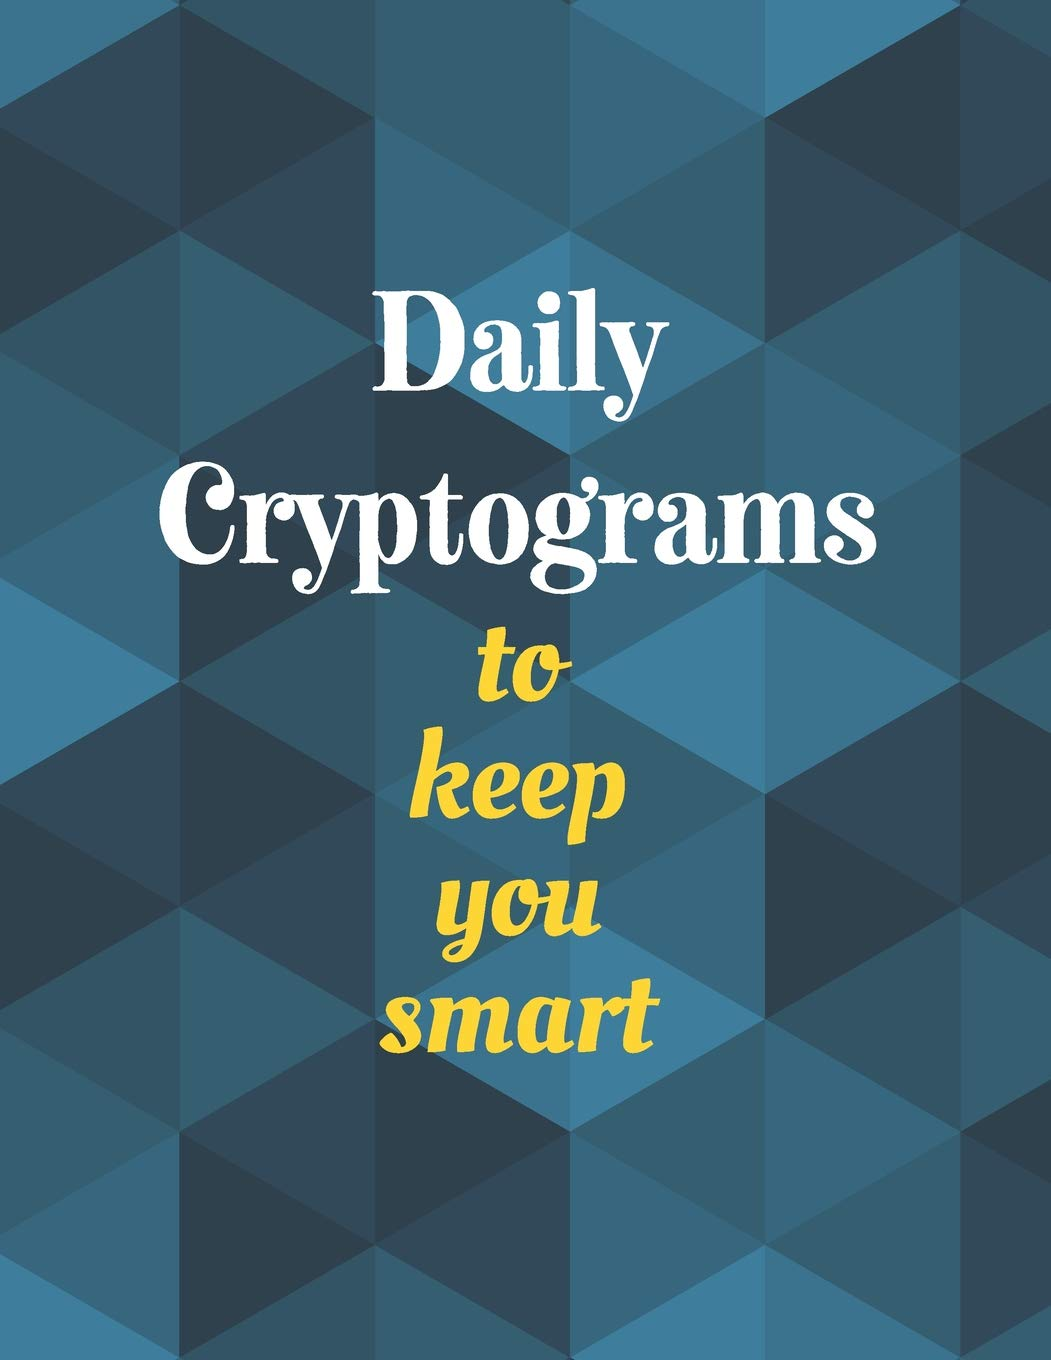 daily cryptograms to keep you smart fun brain puzzles to increase